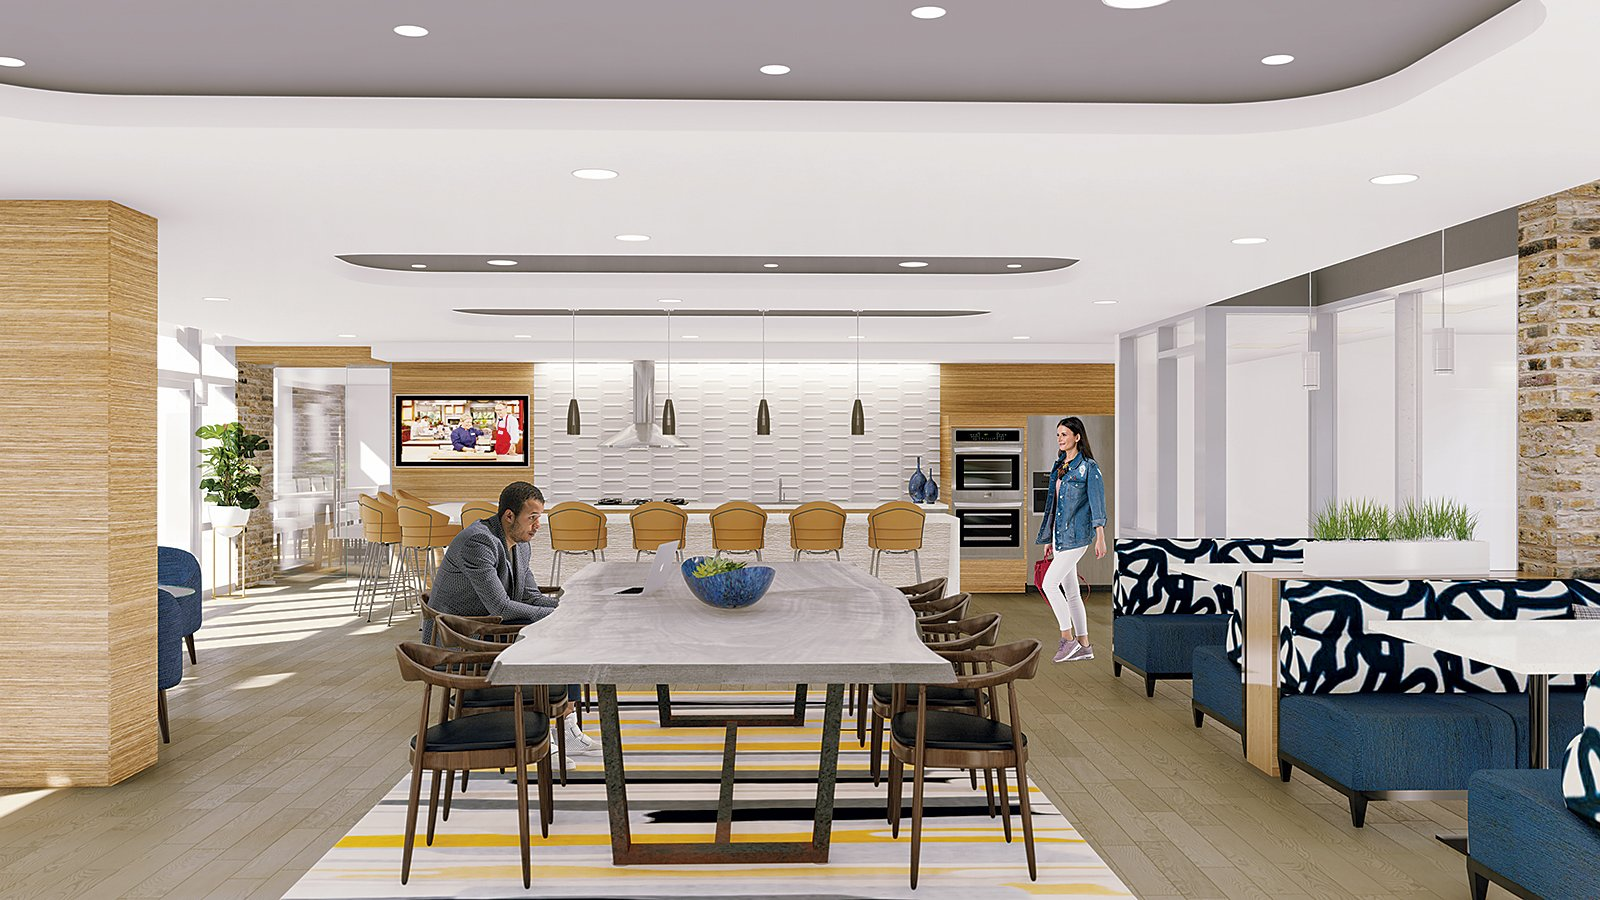 A rendering of a communal space at the Clark, set to begin leasing soon. Courtesy of the Clark.